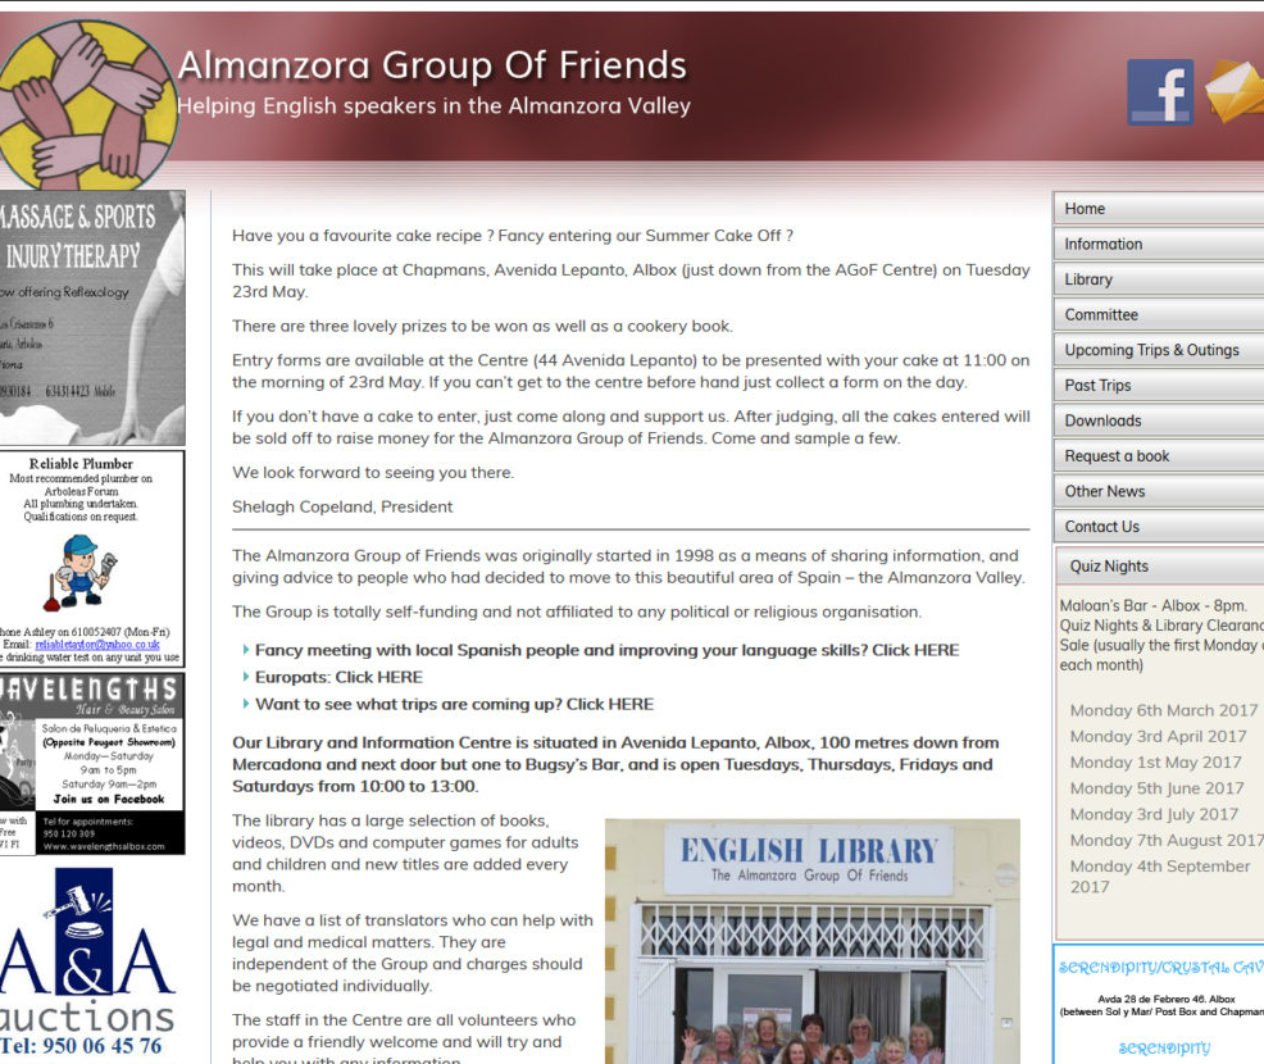 Almanzora Group of Friends